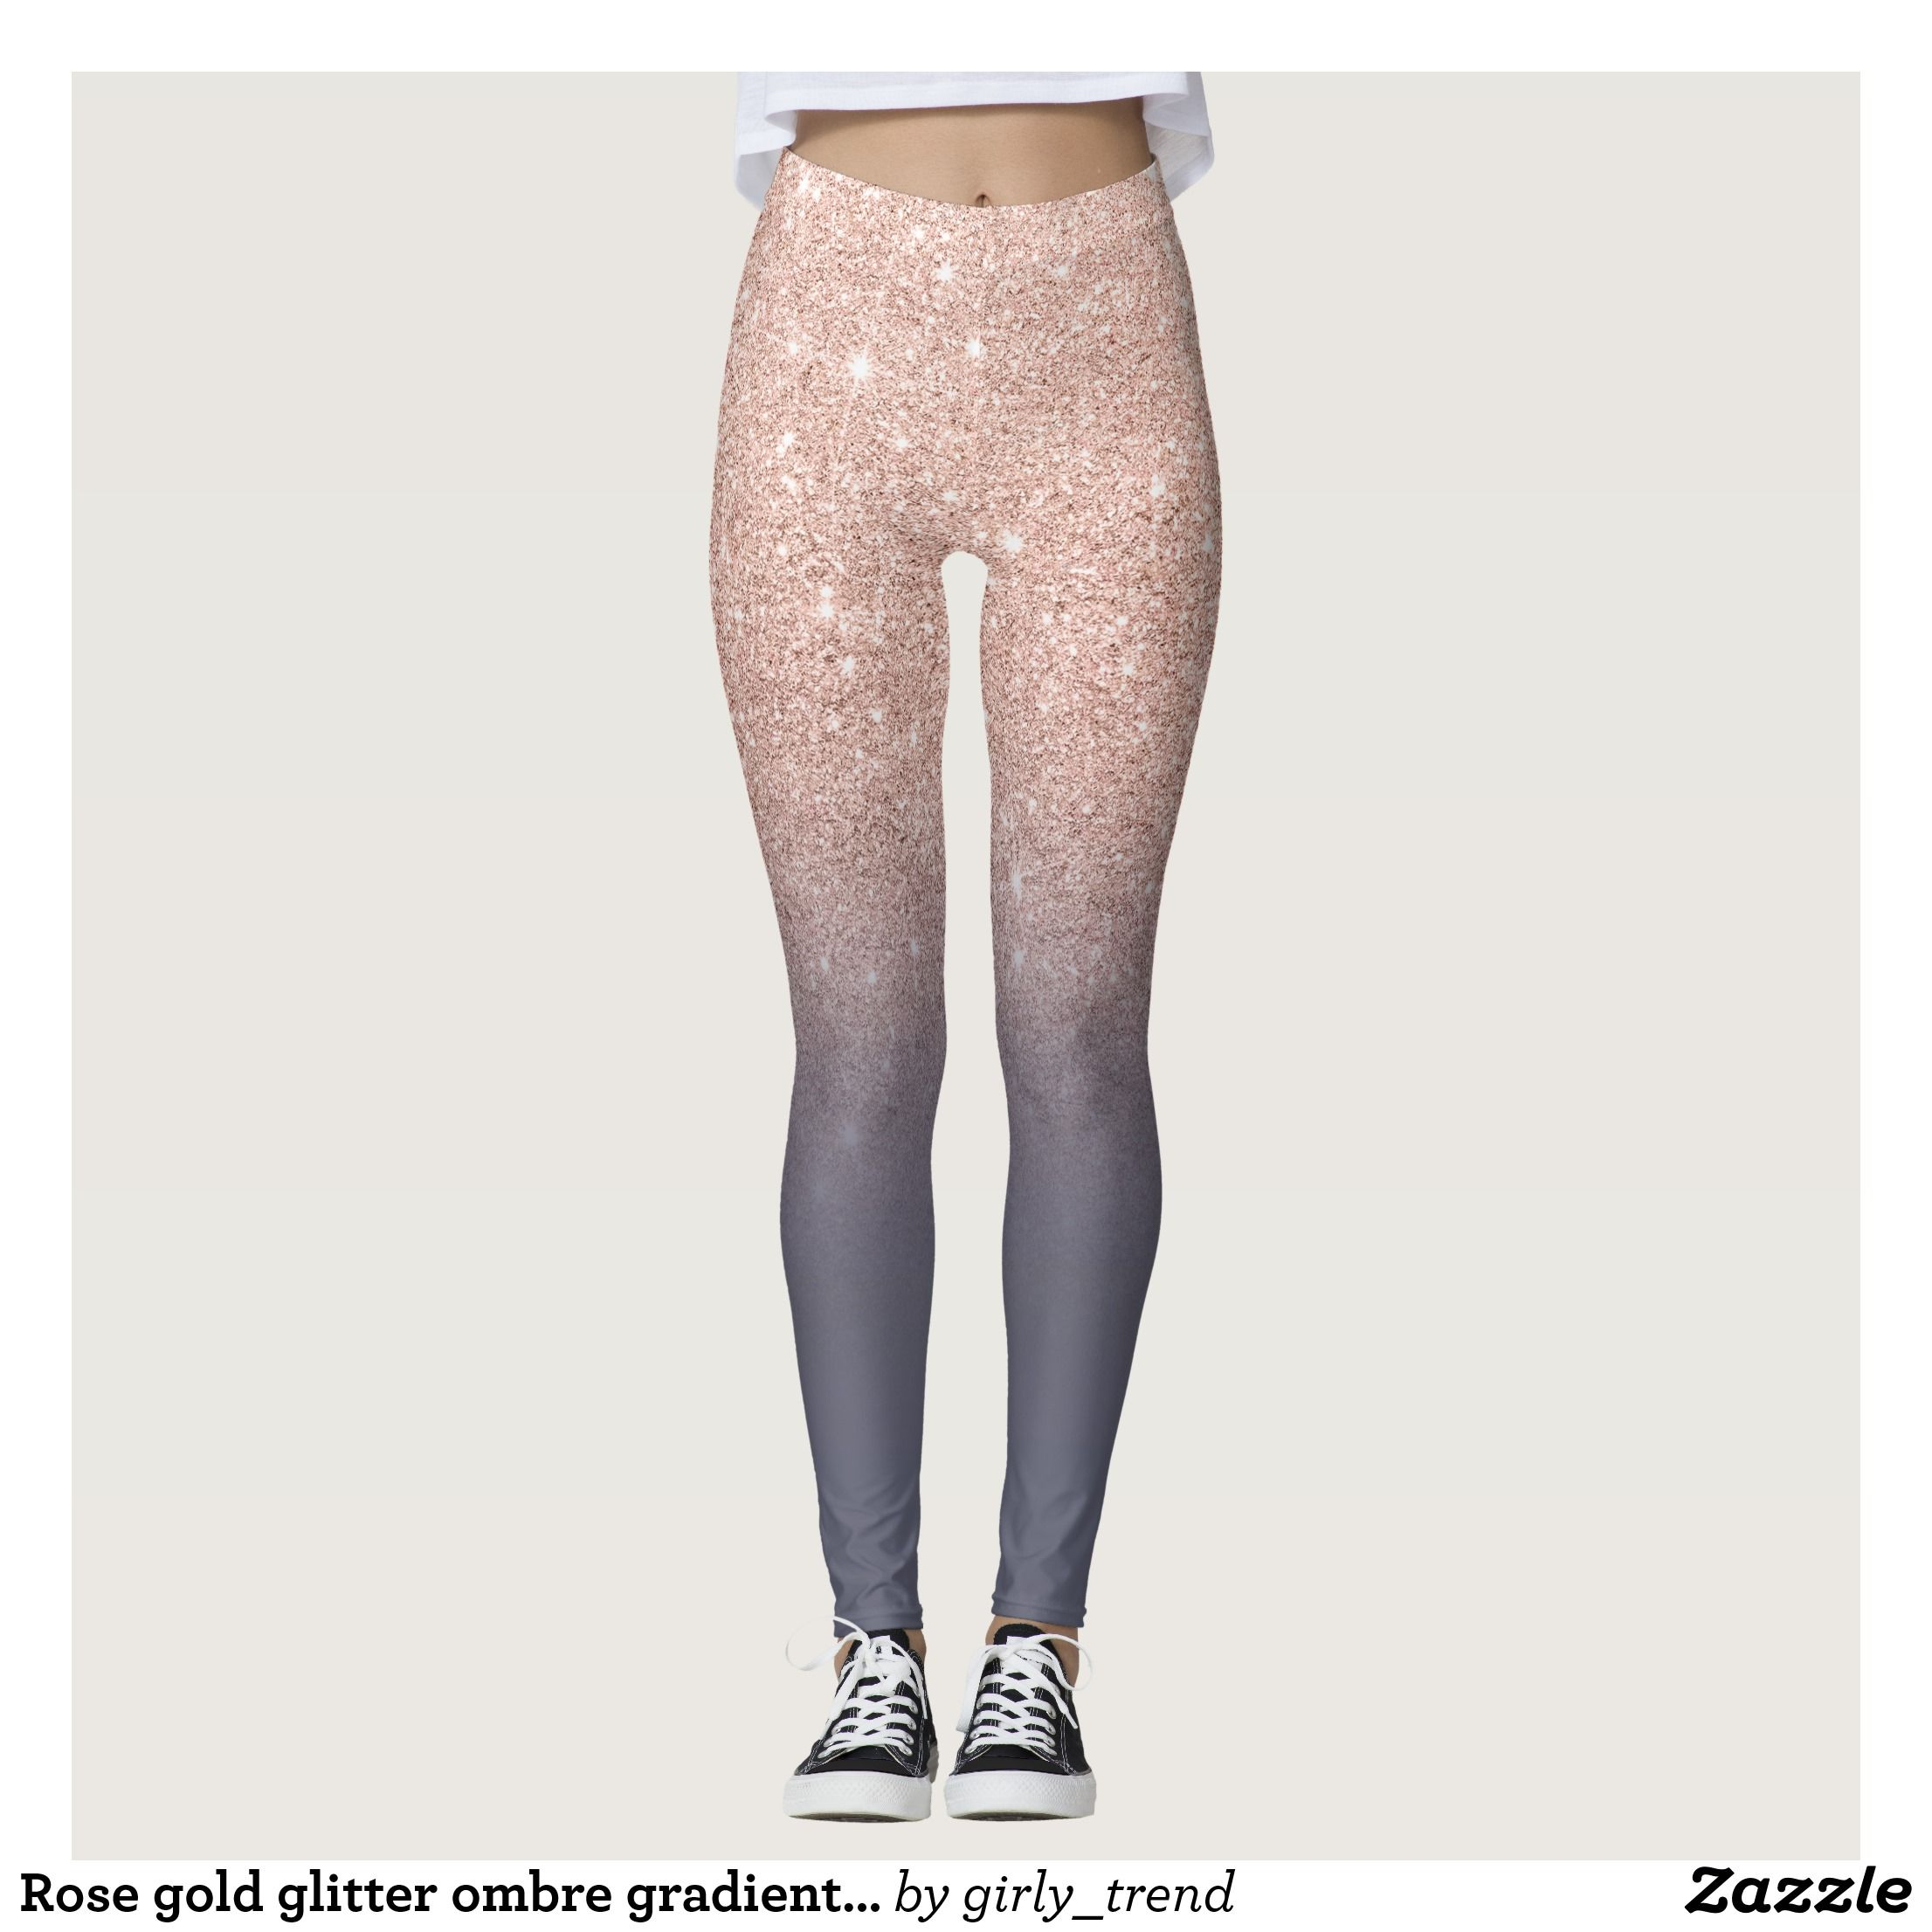 ee51bd9dfd3c4 Rose gold glitter ombre gradient purple grey leggings : Beautiful #Yoga  Pants - #Exercise Leggings and #Running Tights - Health and Training  Inspiration ...